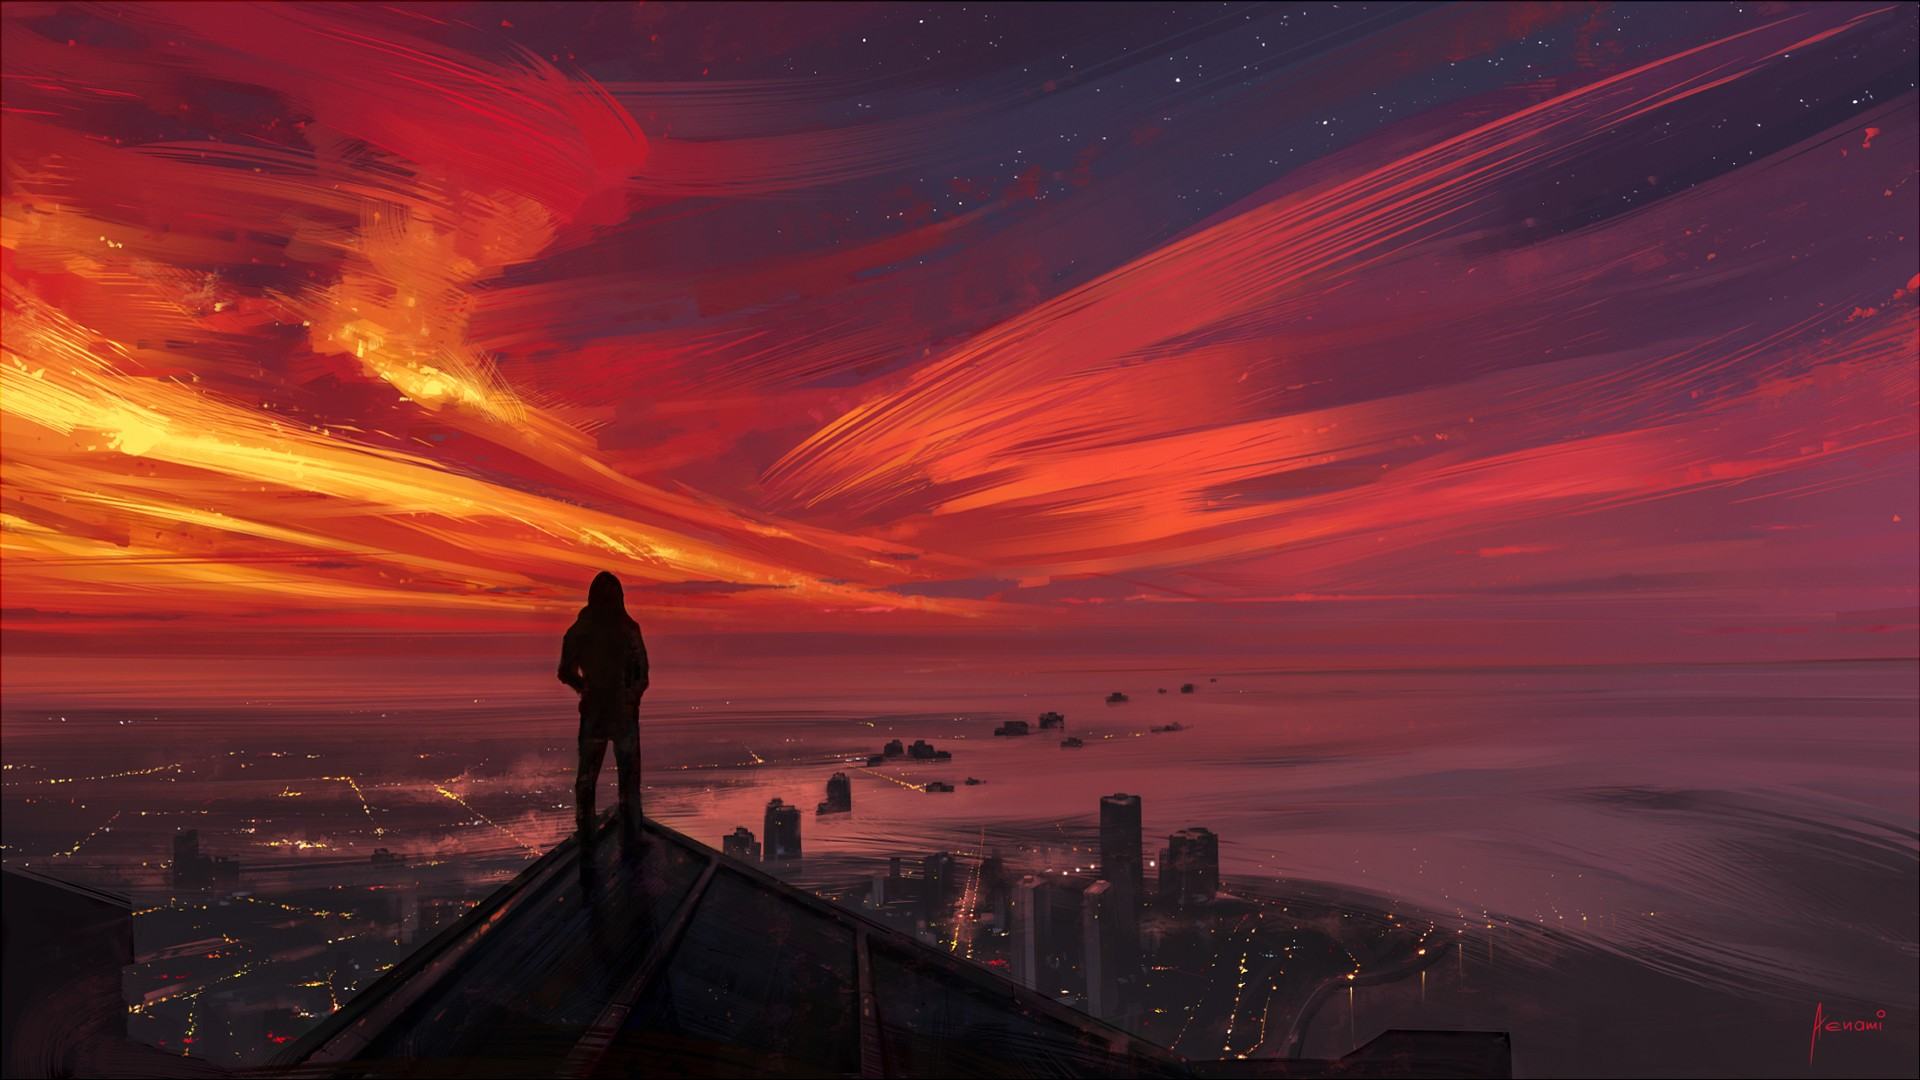 General 1920x1080 looking into the distance cityscape painting sunset sky dark sunlight horizon Aenami